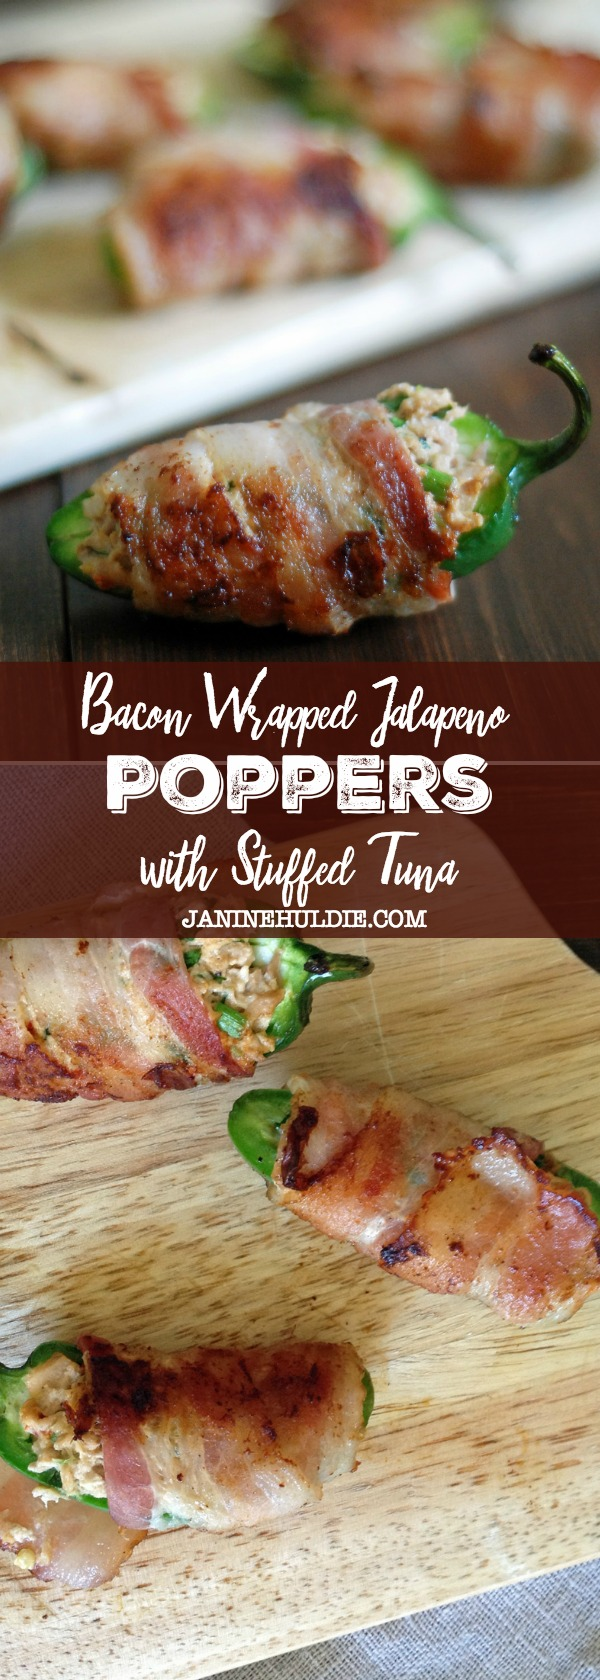 Bacon Wrapped Jalapeno Poppers with Stuffed Tuna